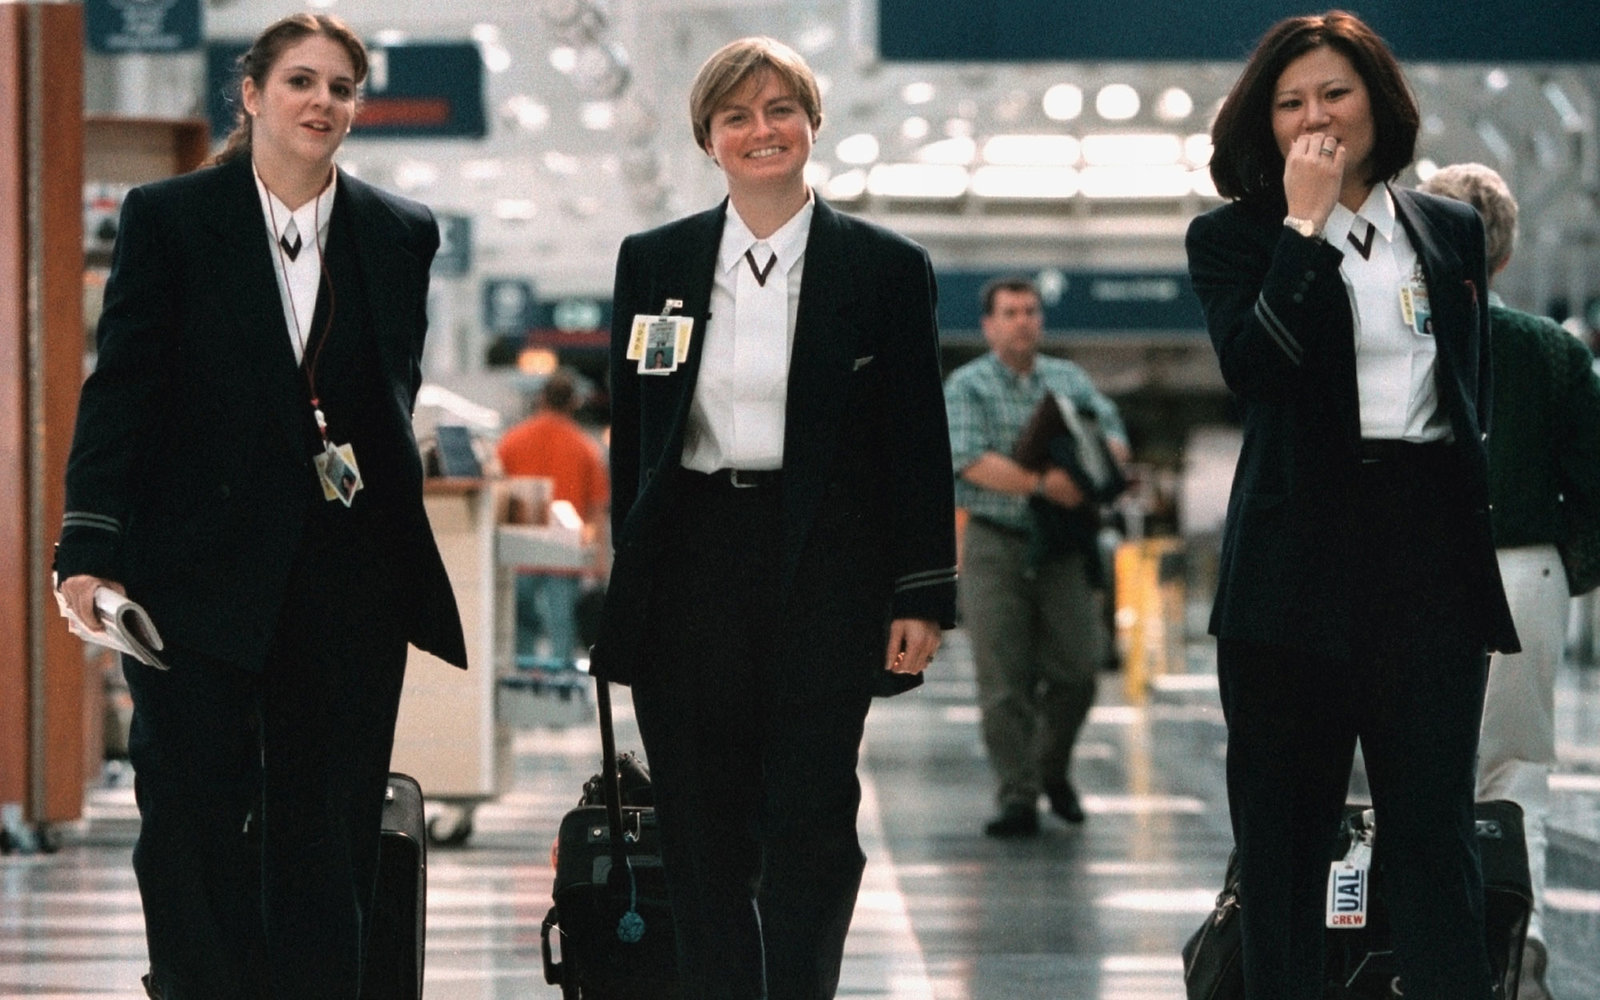 379263 01: Three United Airlines flight attendants walk from their arriving flight September 27, 2000 at Chicago's O''Hare International Airport. (Photo by Tim Boyle/Newsmakers)